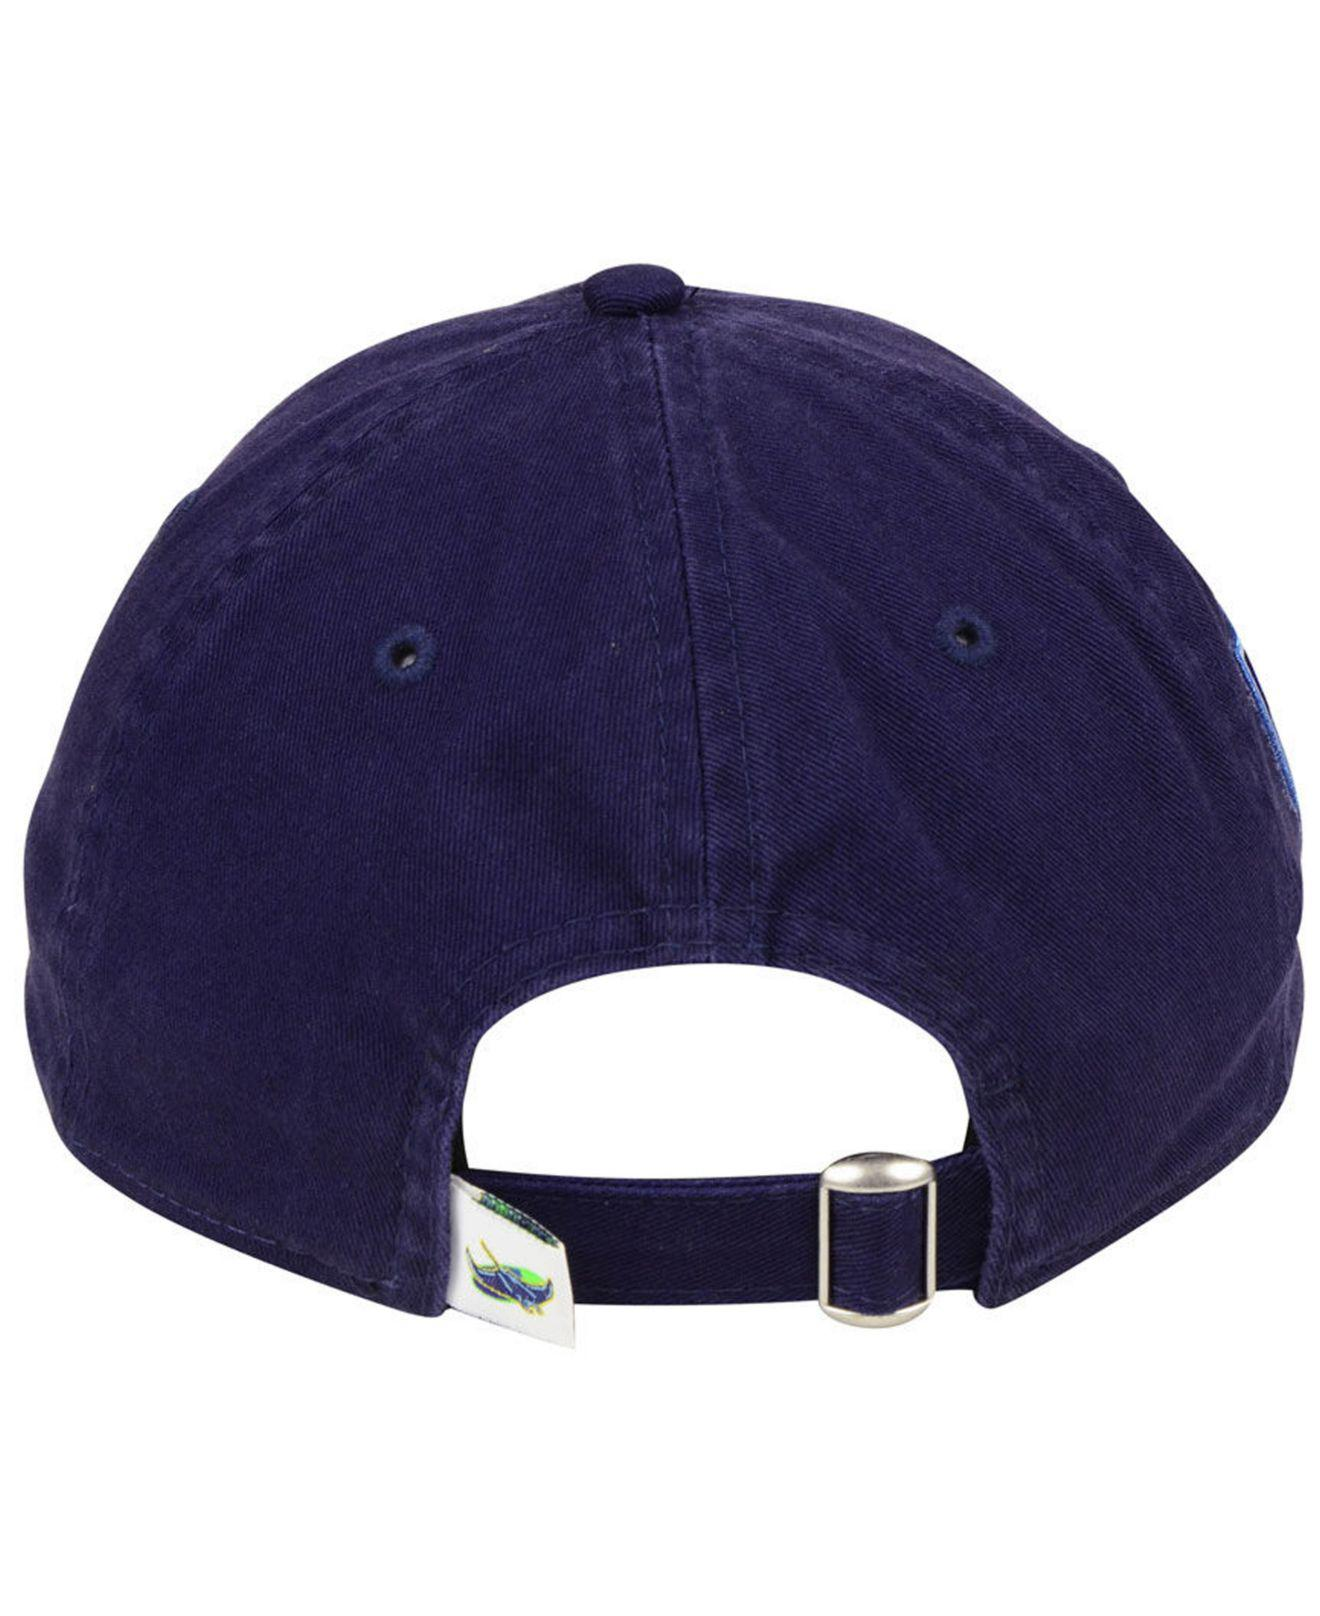 online store a7081 18874 ... sale germany tampa bay rays core classic 20th anniversary 9twenty cap  for men lyst. view